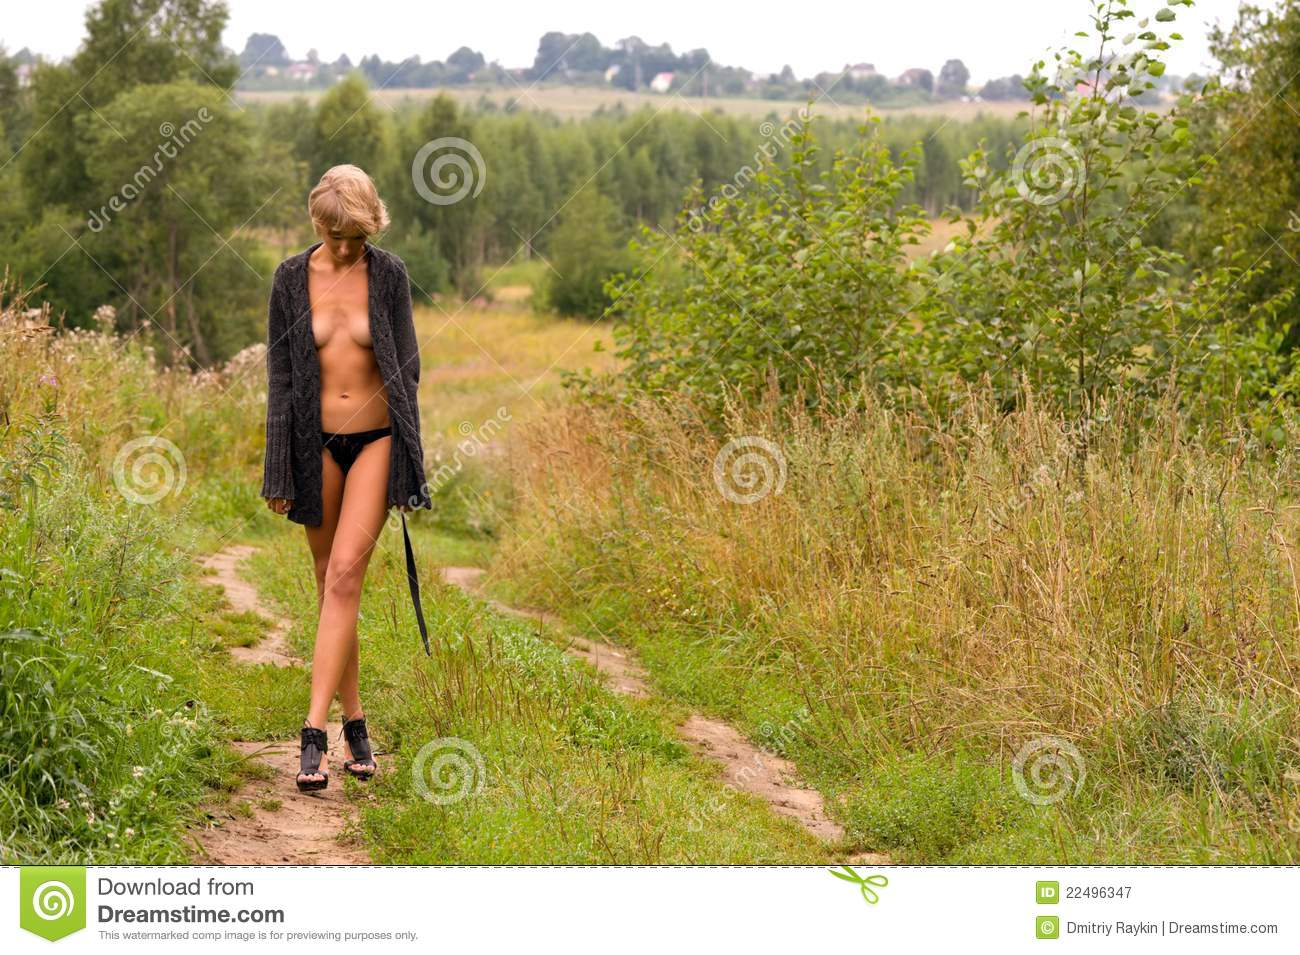 Naked woman walking just came